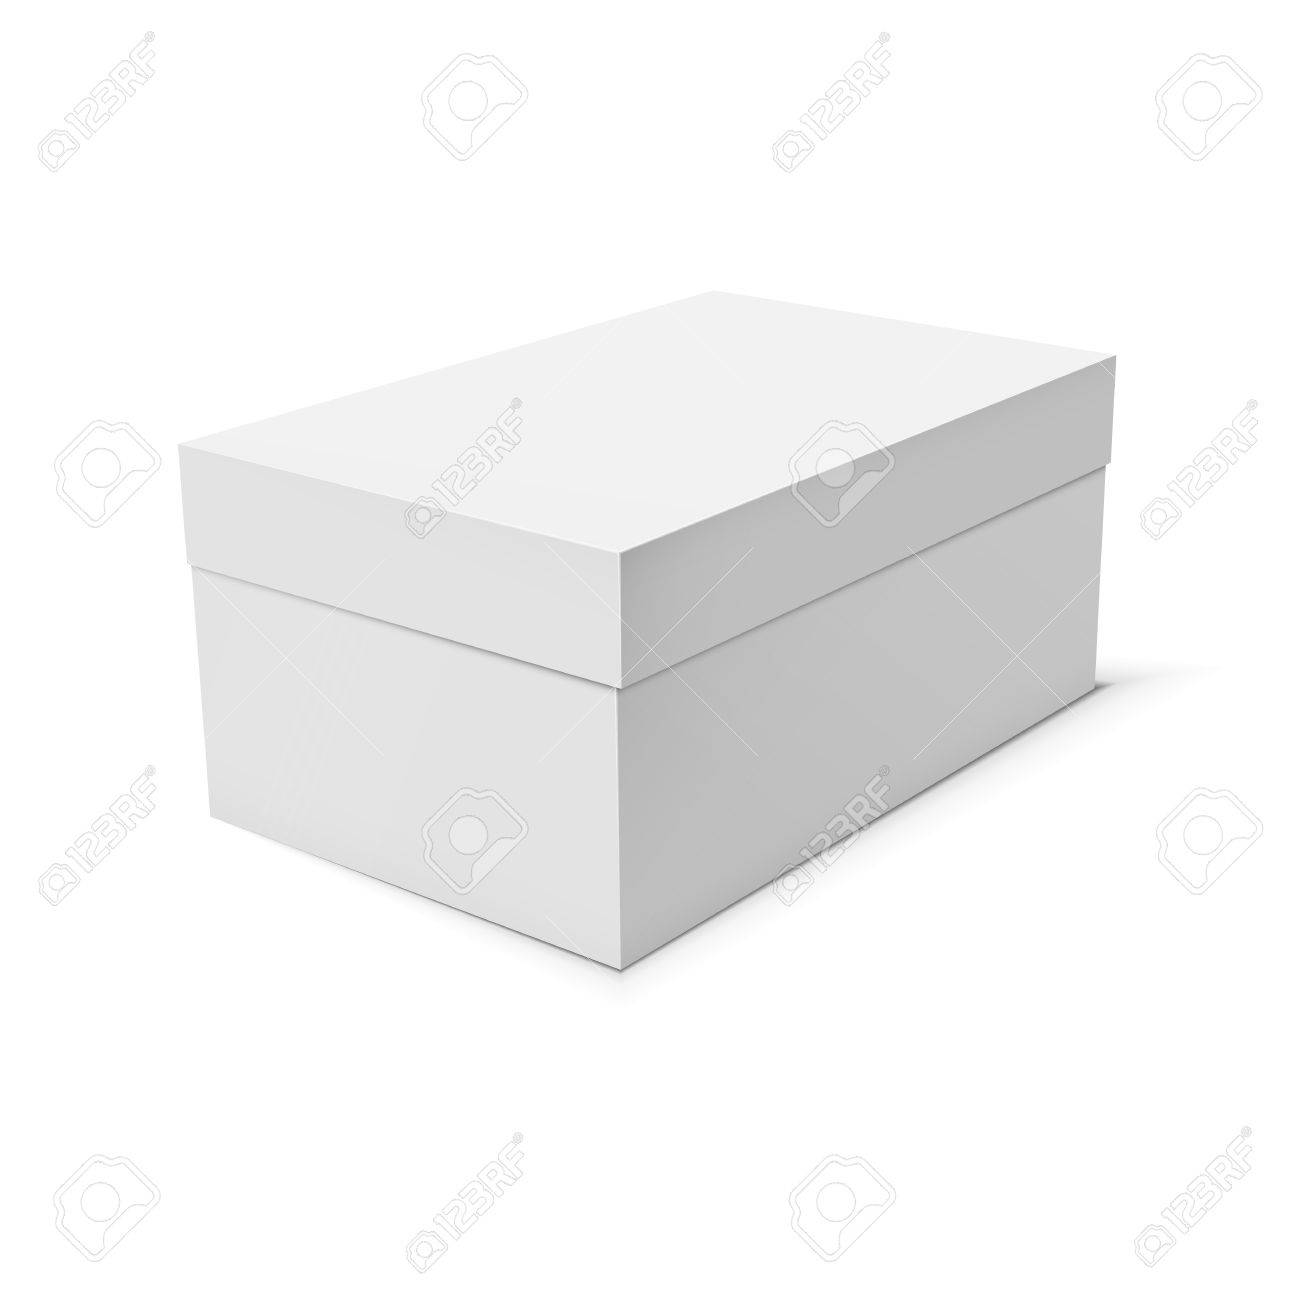 Blank Paper Or Cardboard Box Template On White Background Vector Illustration Stock